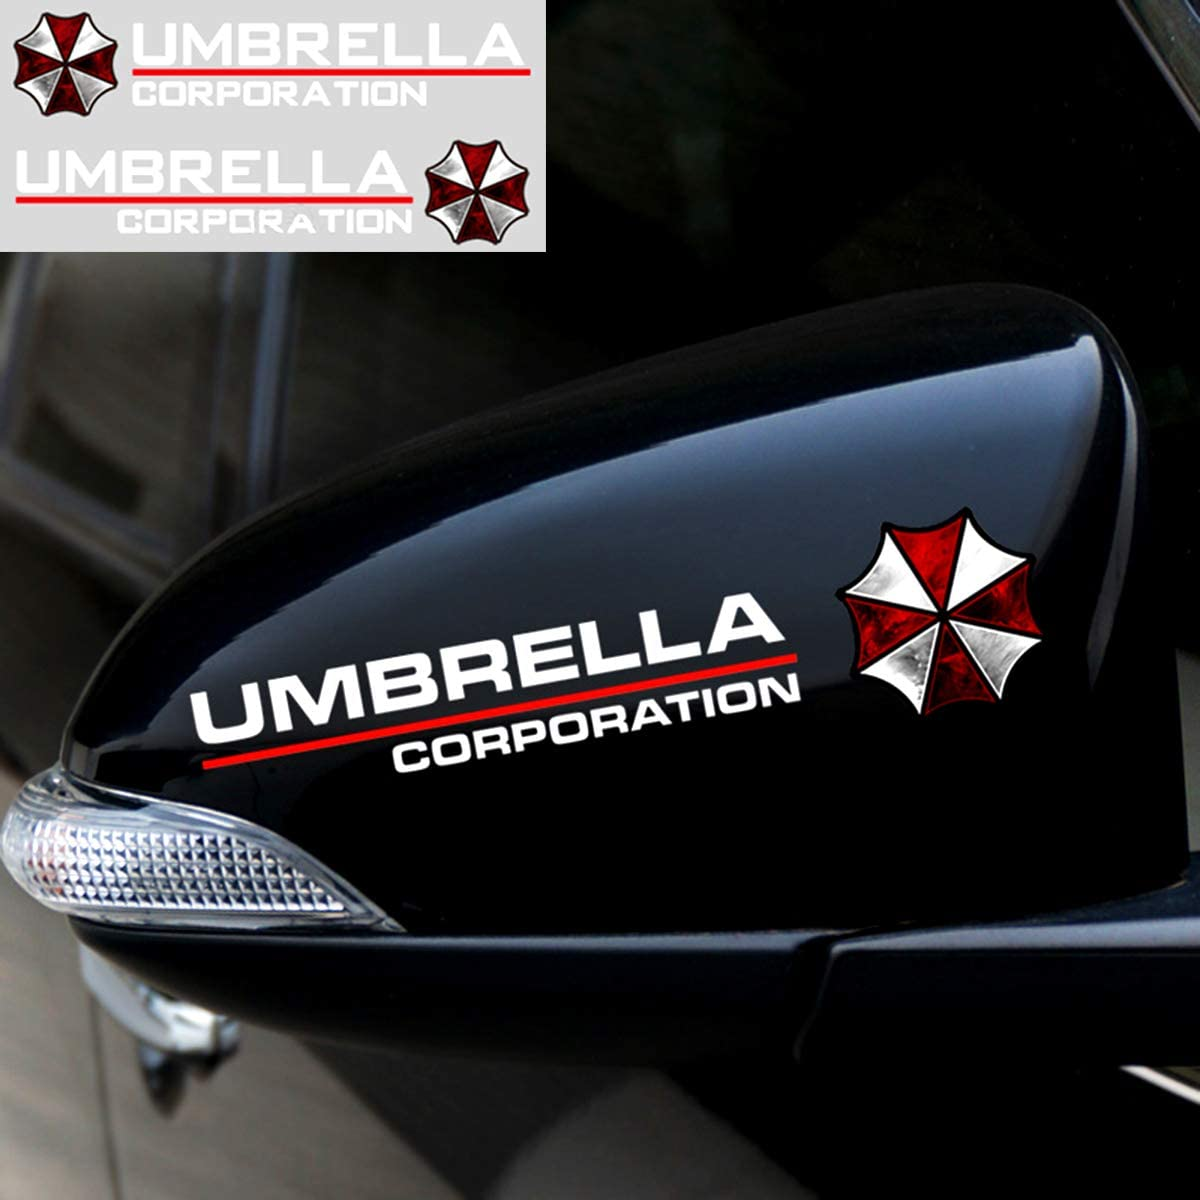 YSpring 1 Pair auto Rearview Mirror Reflective Decals Resident Evil Umbrella Corporation car Mirror Stickers for car Motorcycle Truck (Style E- White)